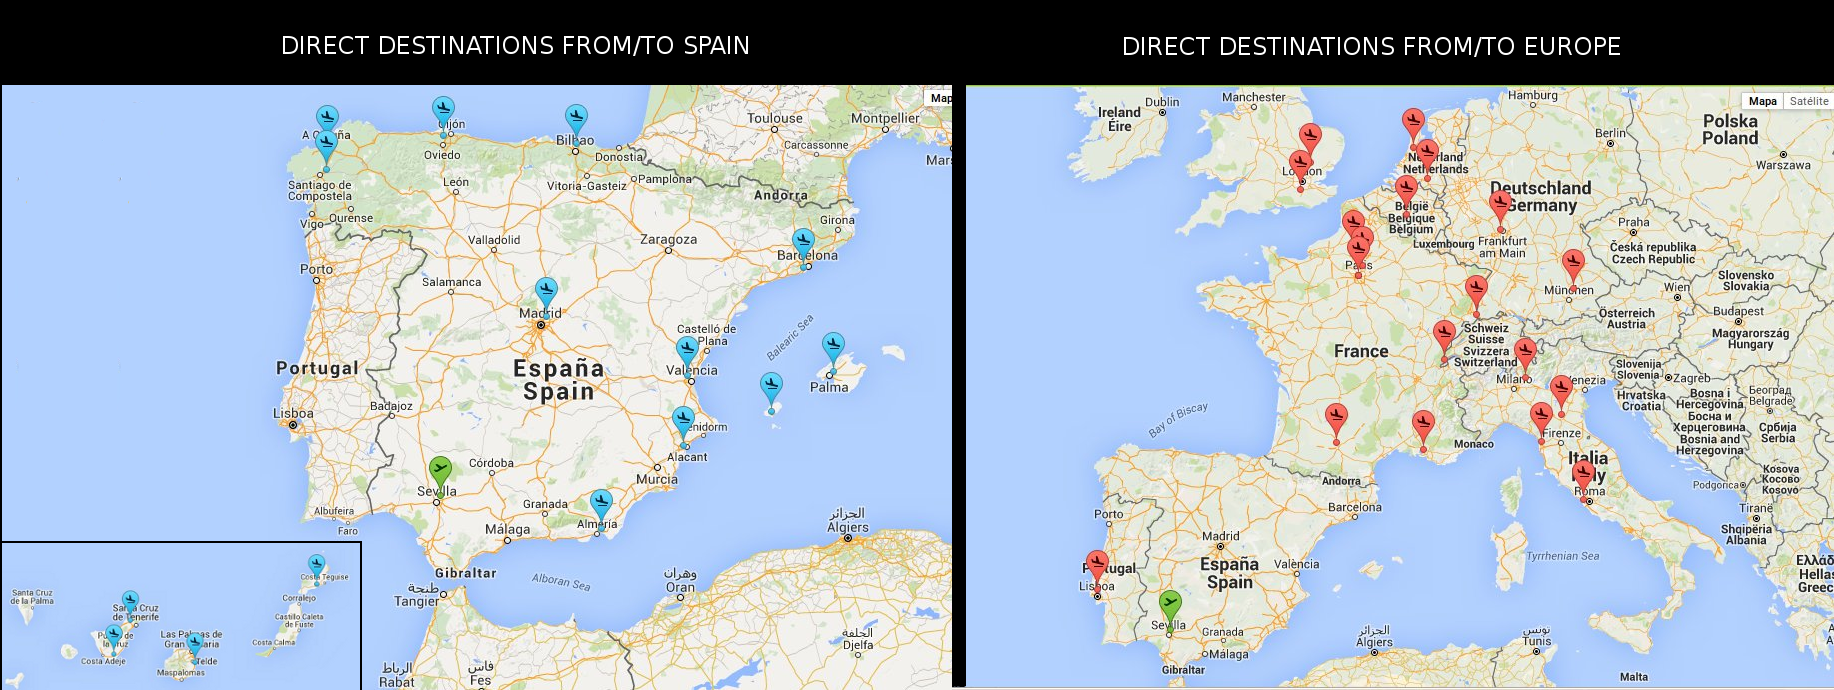 Destinations Map From/To Seville